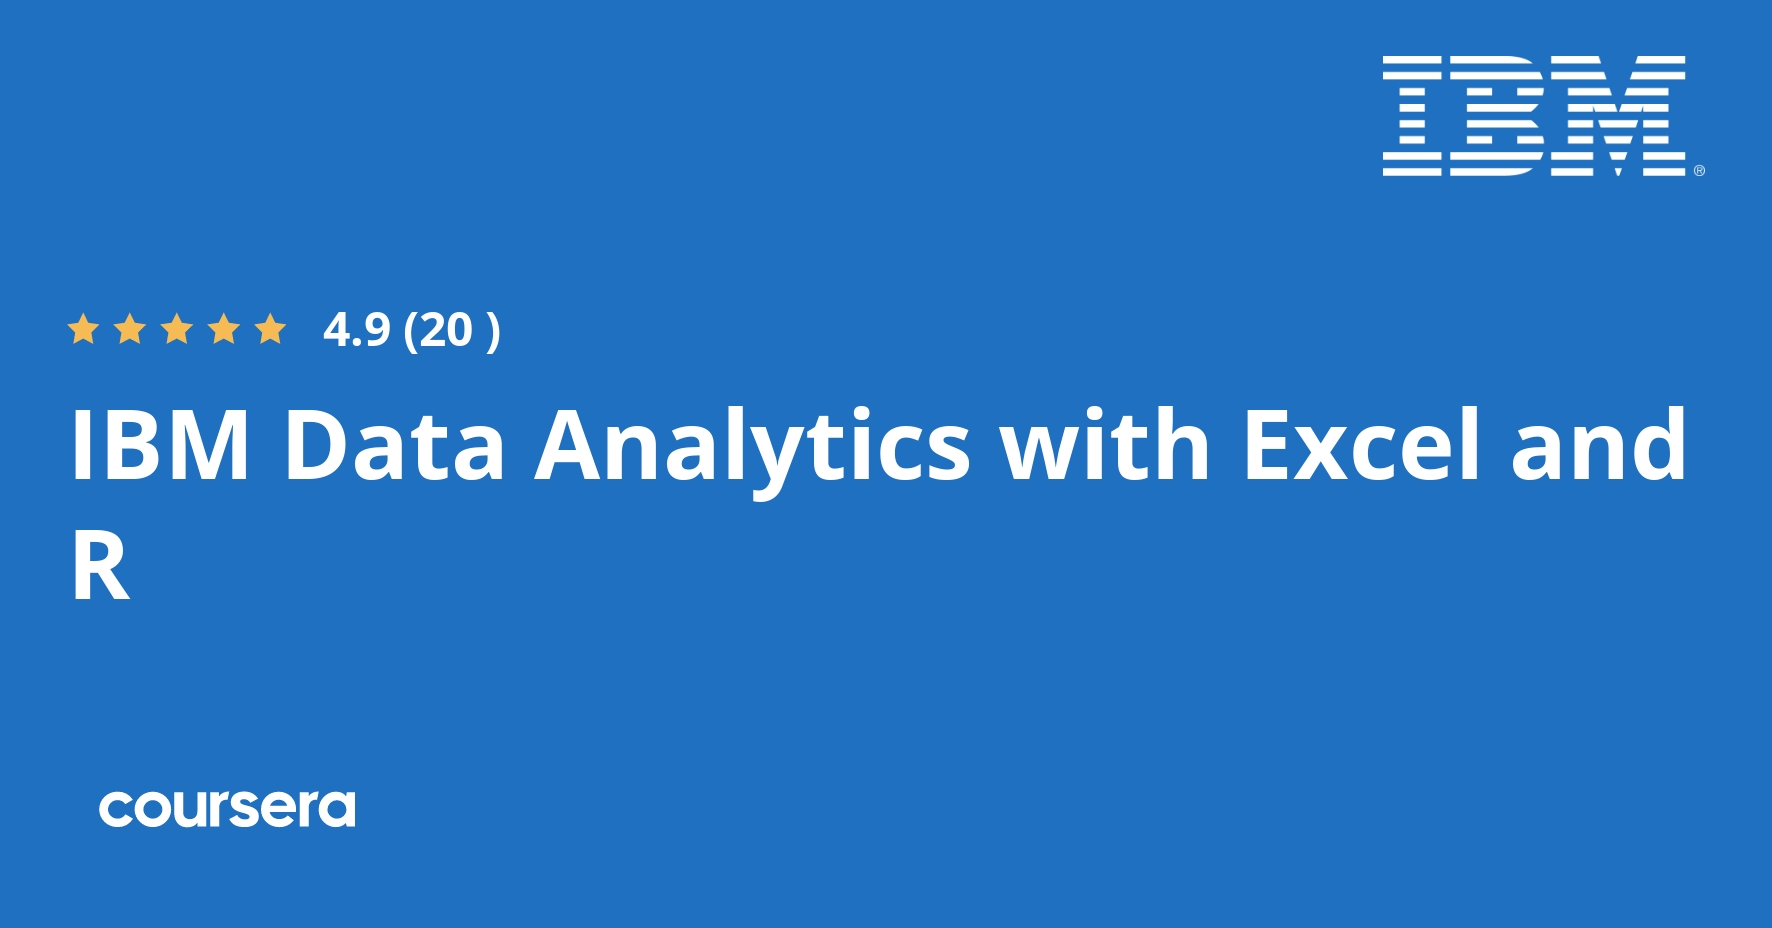 IBM Data Analytics with Excel and R Professional Certificate